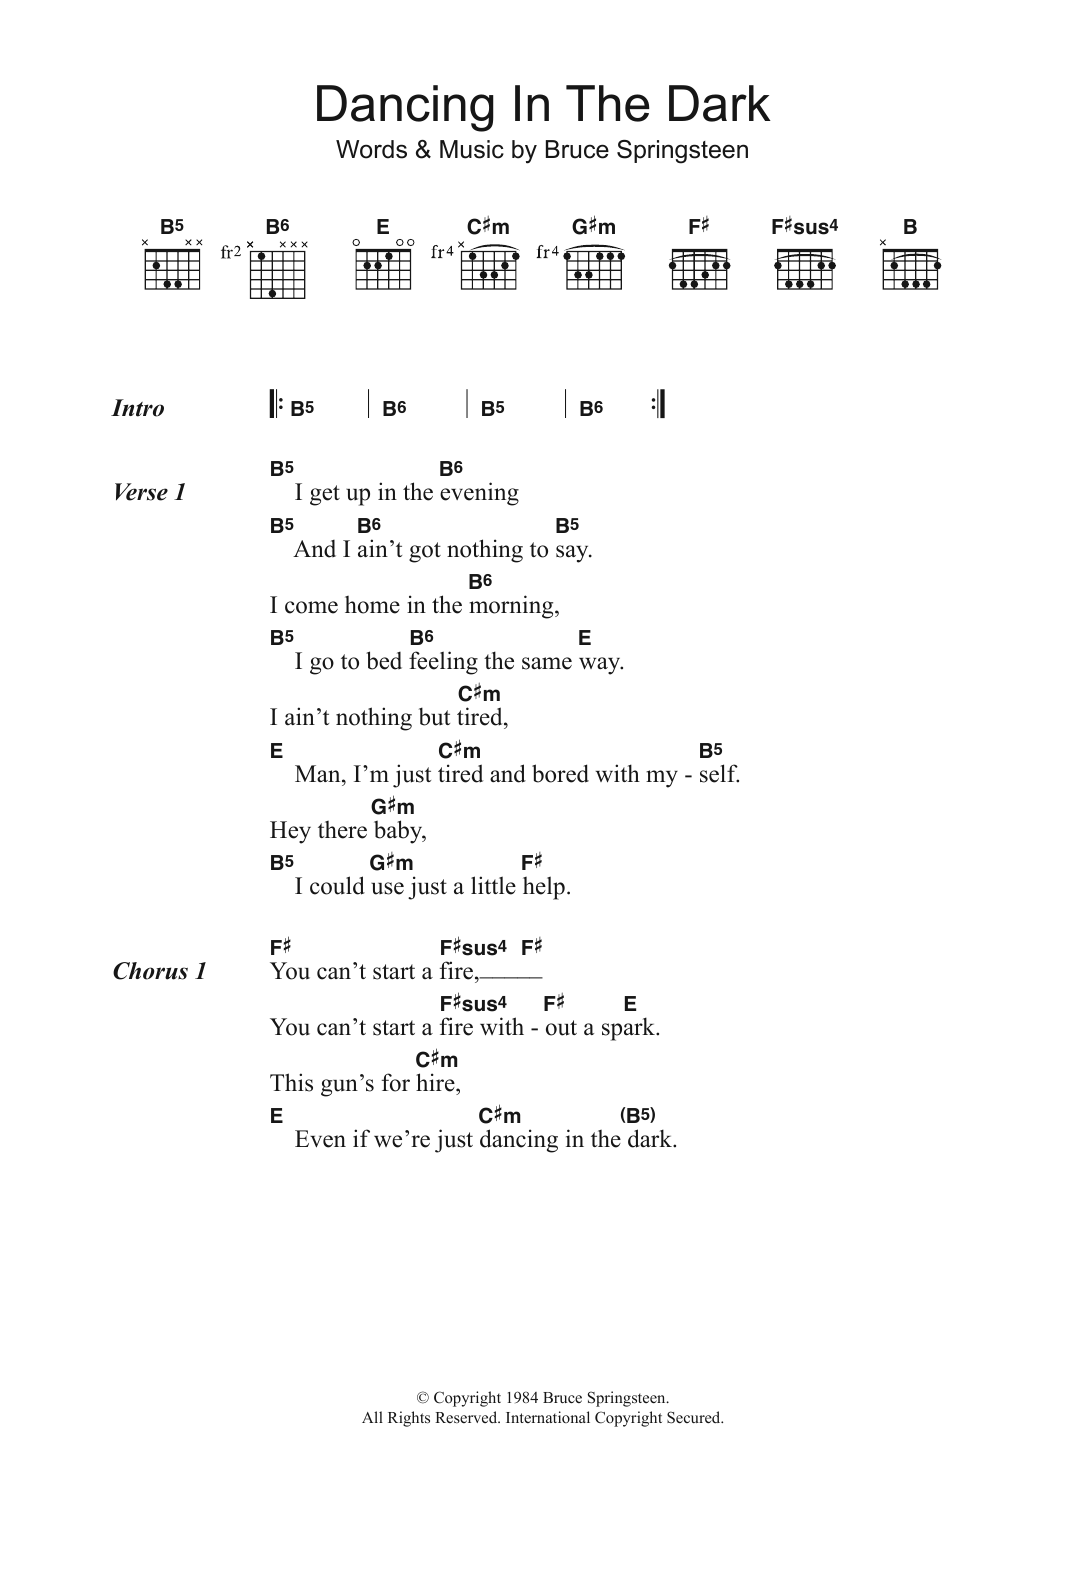 Dancing In The Dark Sheet Music Bruce Springsteen Lyrics Chords